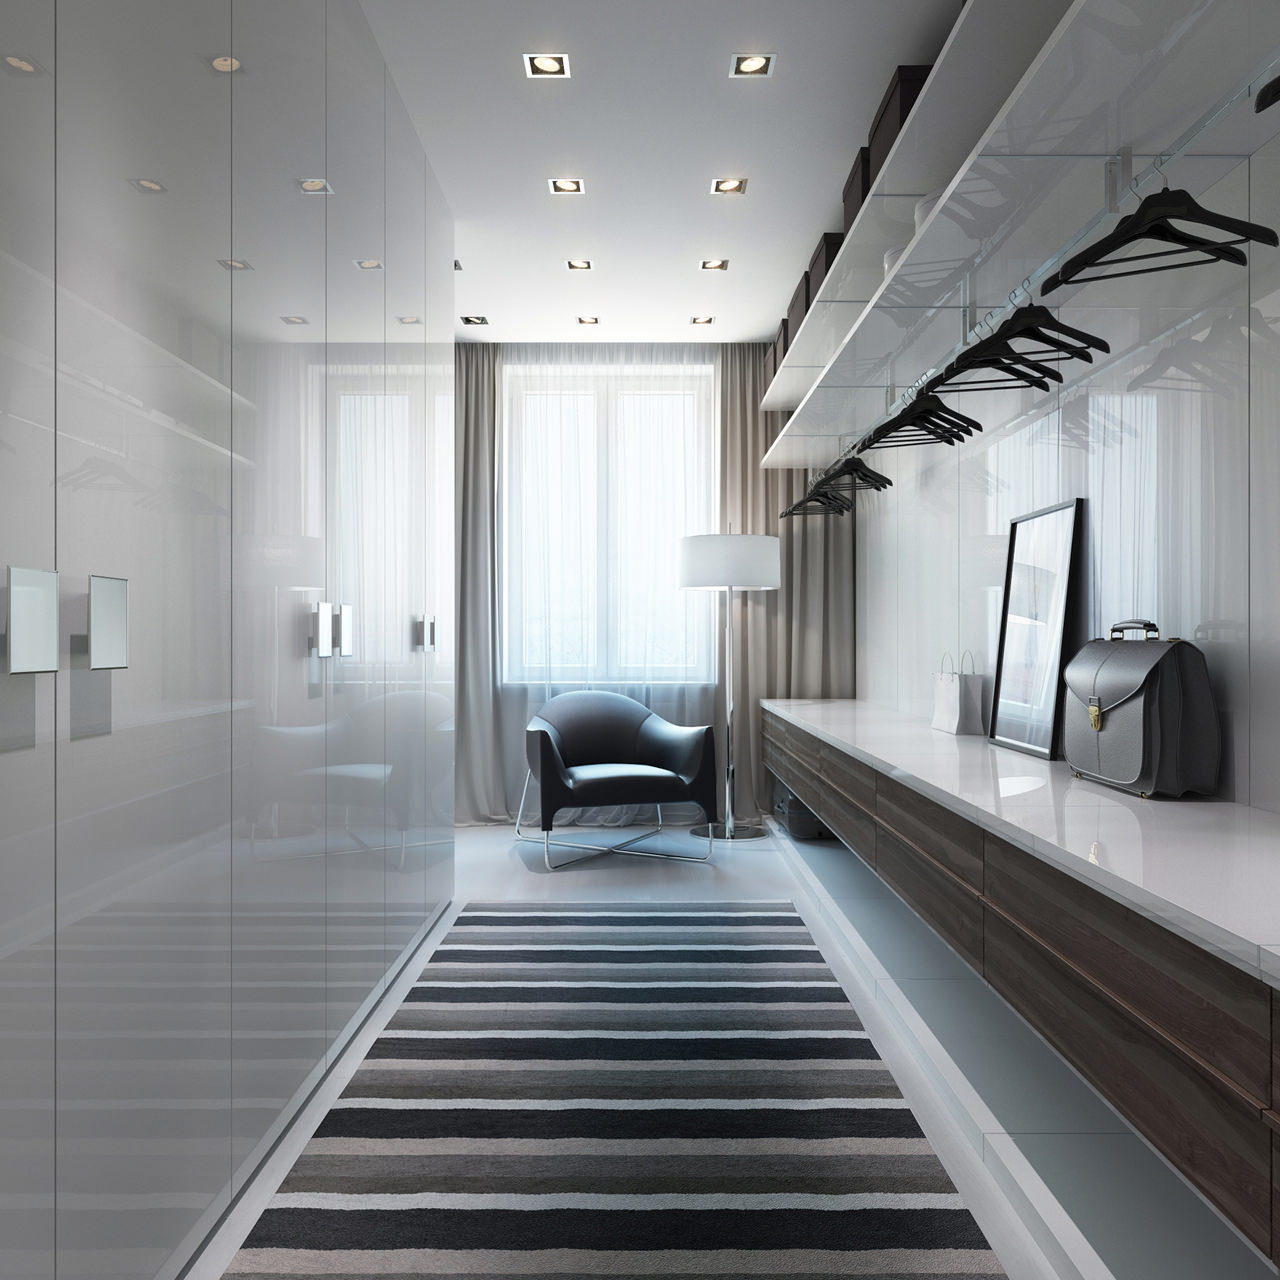 Recessed lighting is neat and on point in this luxury dressing area